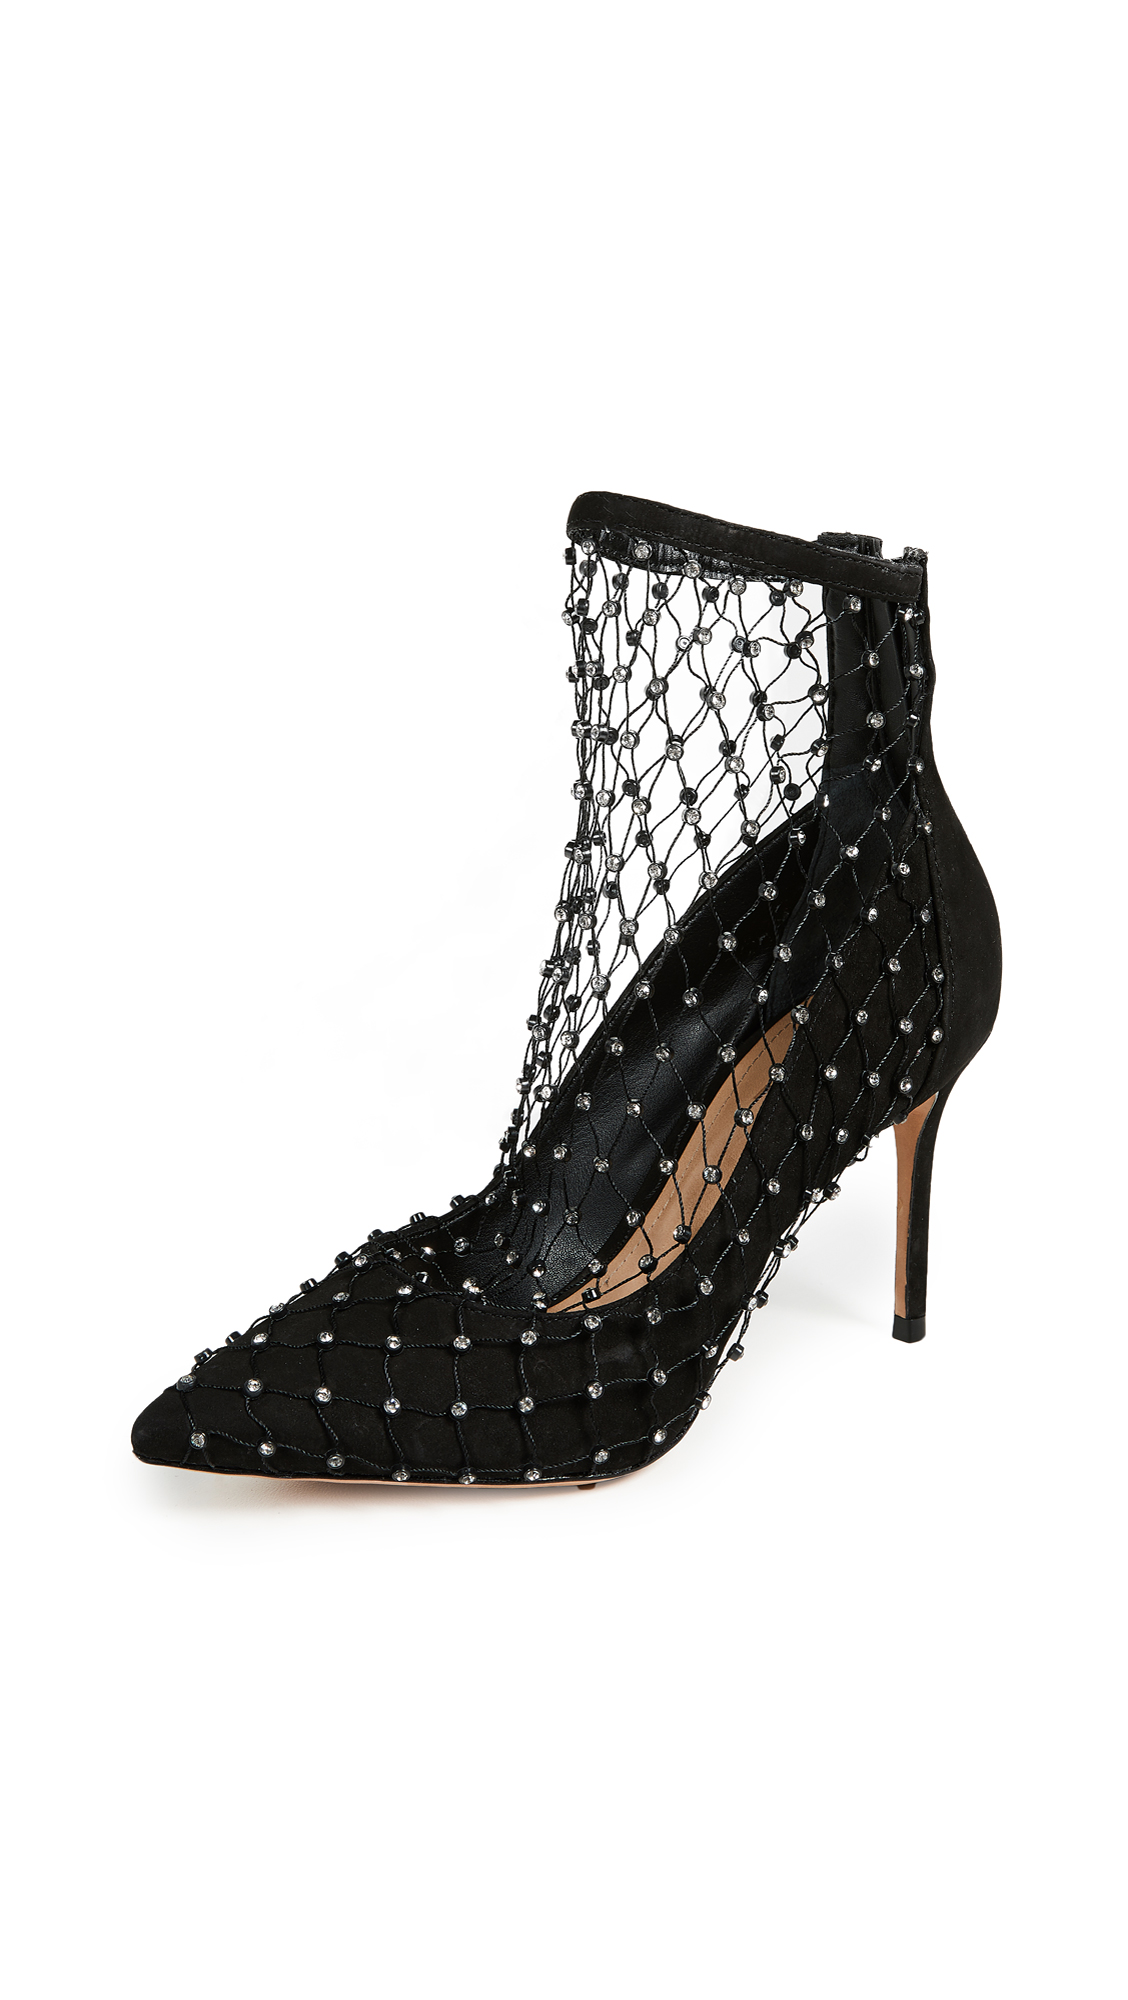 Schutz Chaya Mesh Pumps In Black